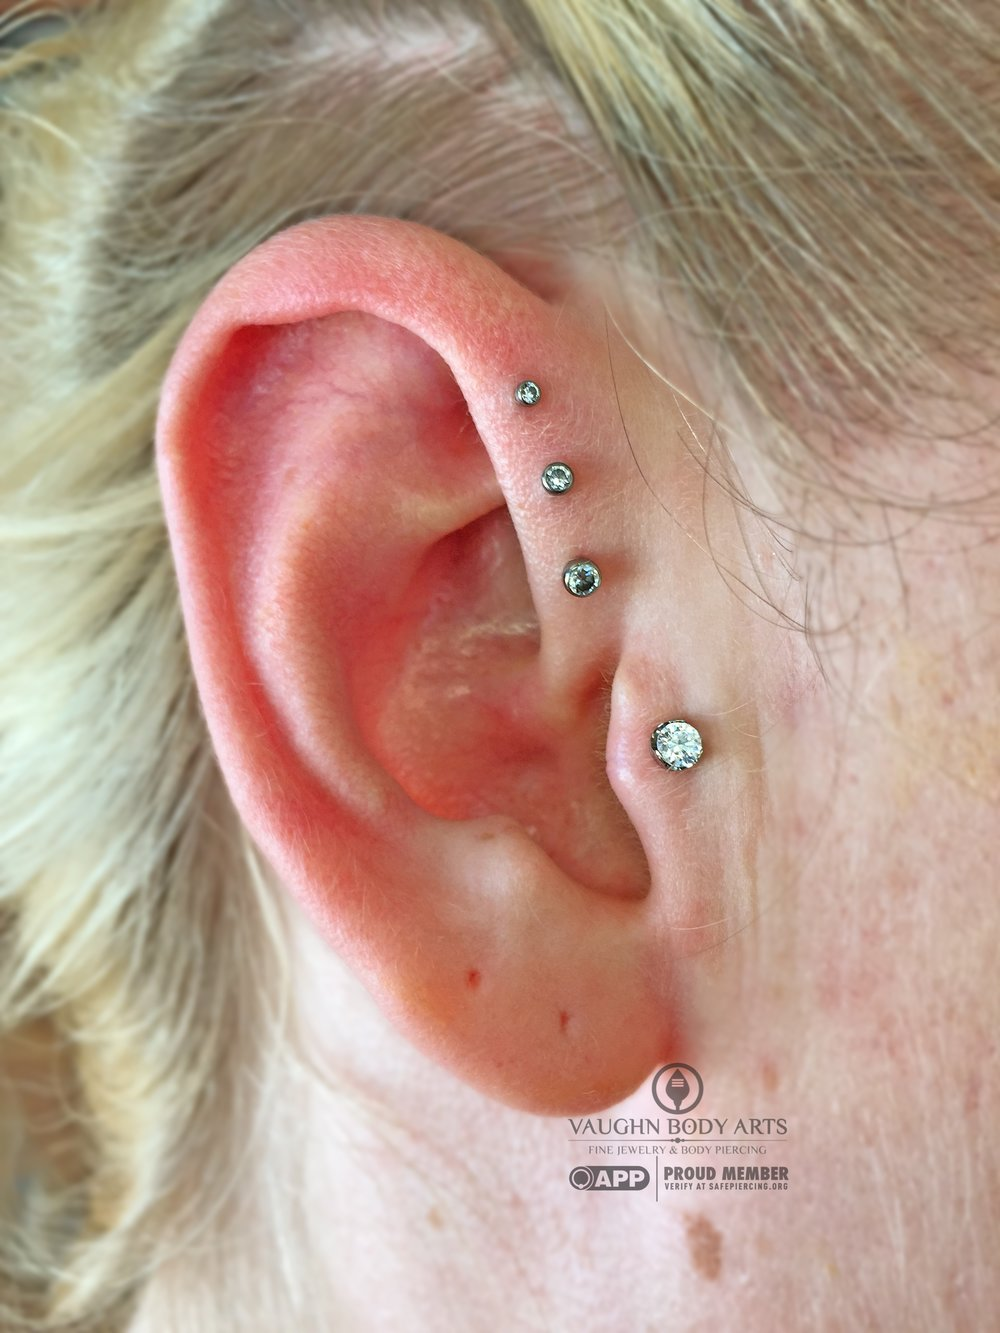 Triple forward helix piercings with titanium jewelry from NeoMetal.